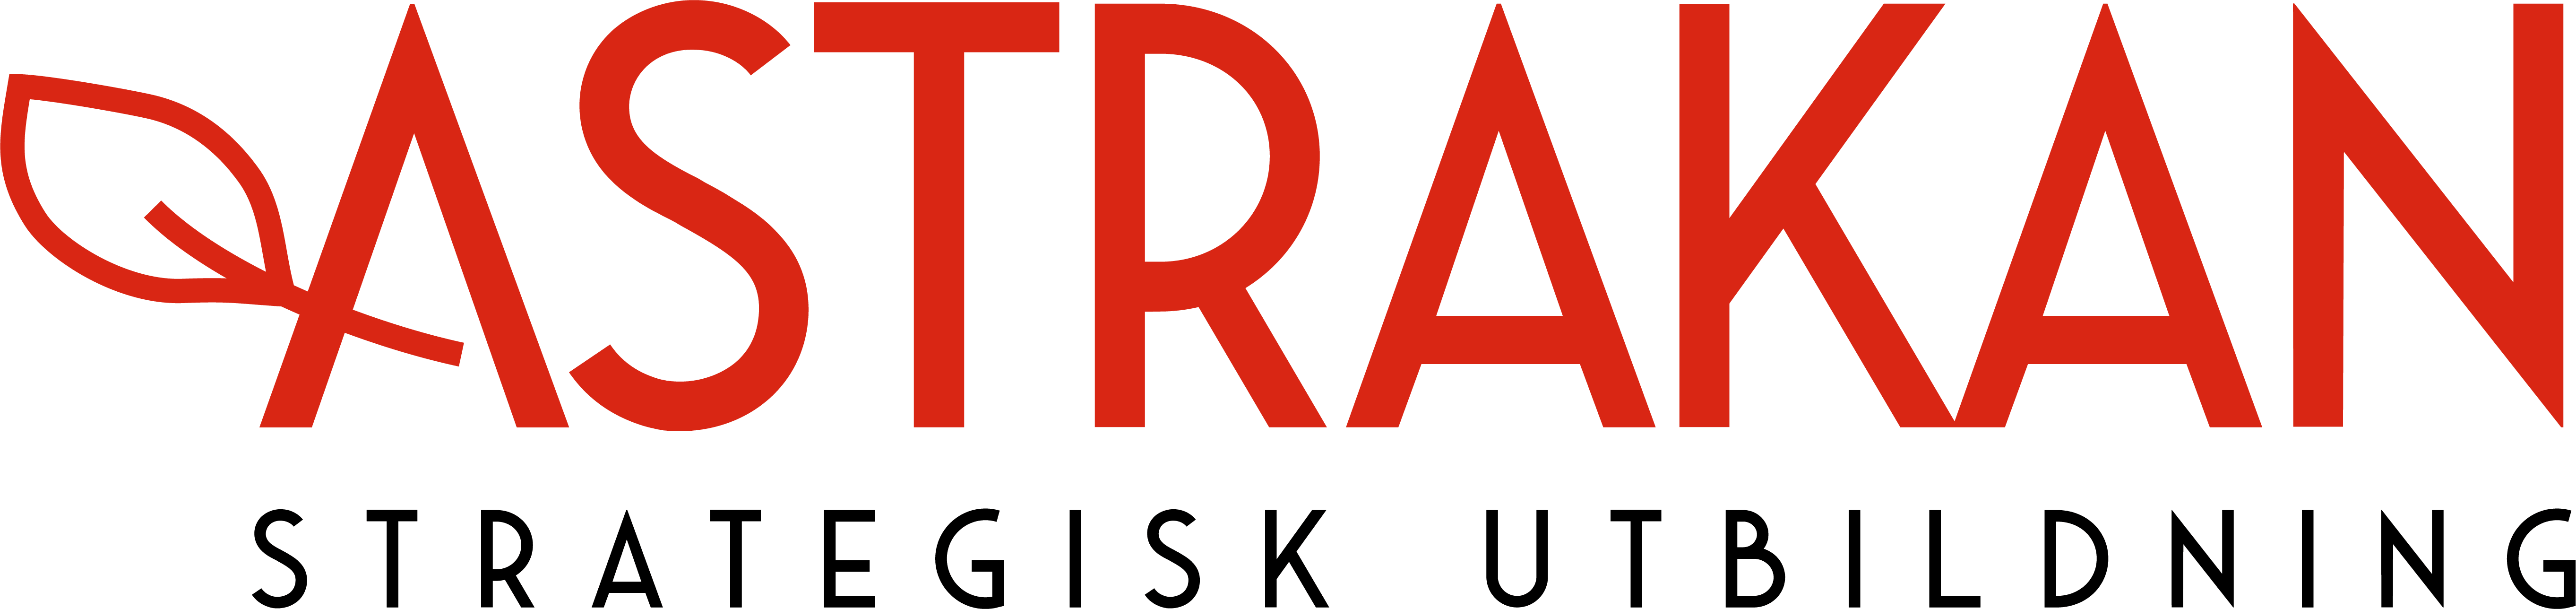 Astrakan_logotype_red_300